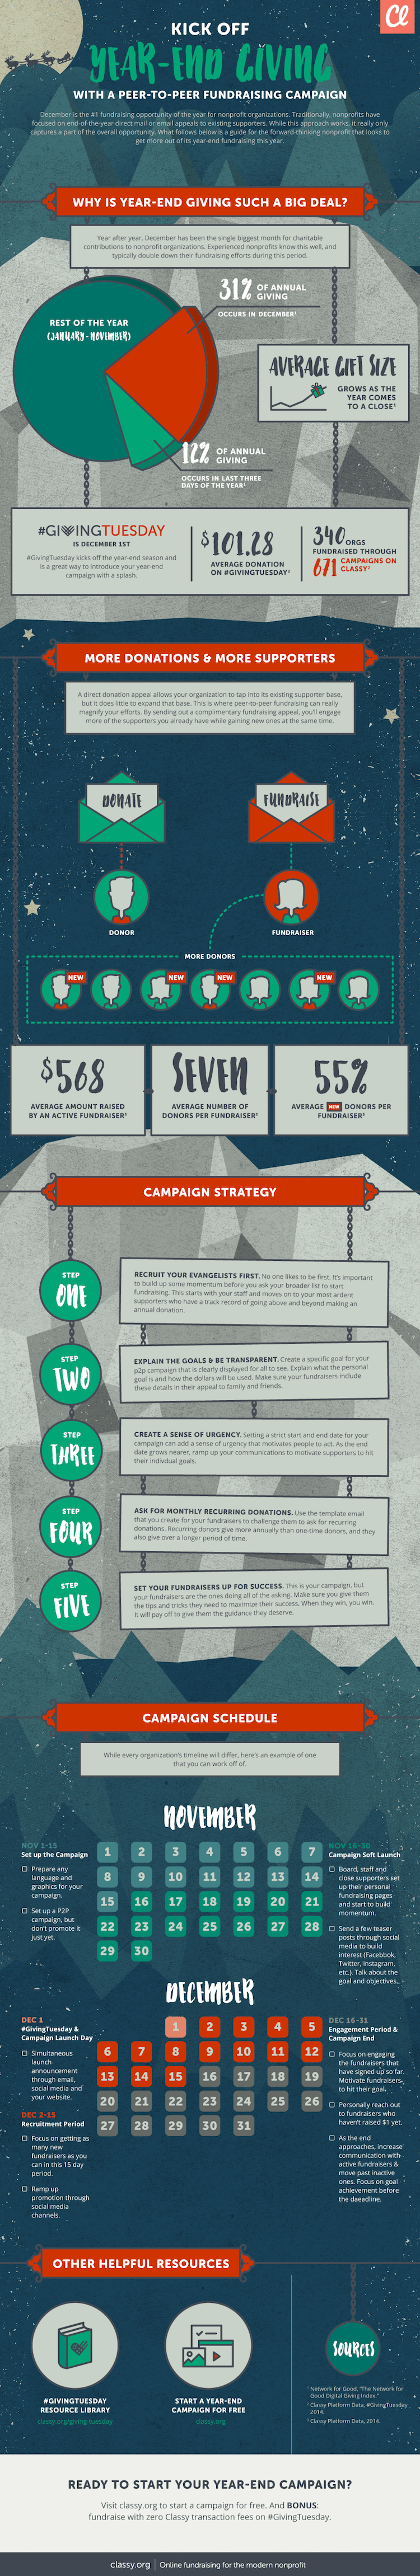 year-end campaign infographic